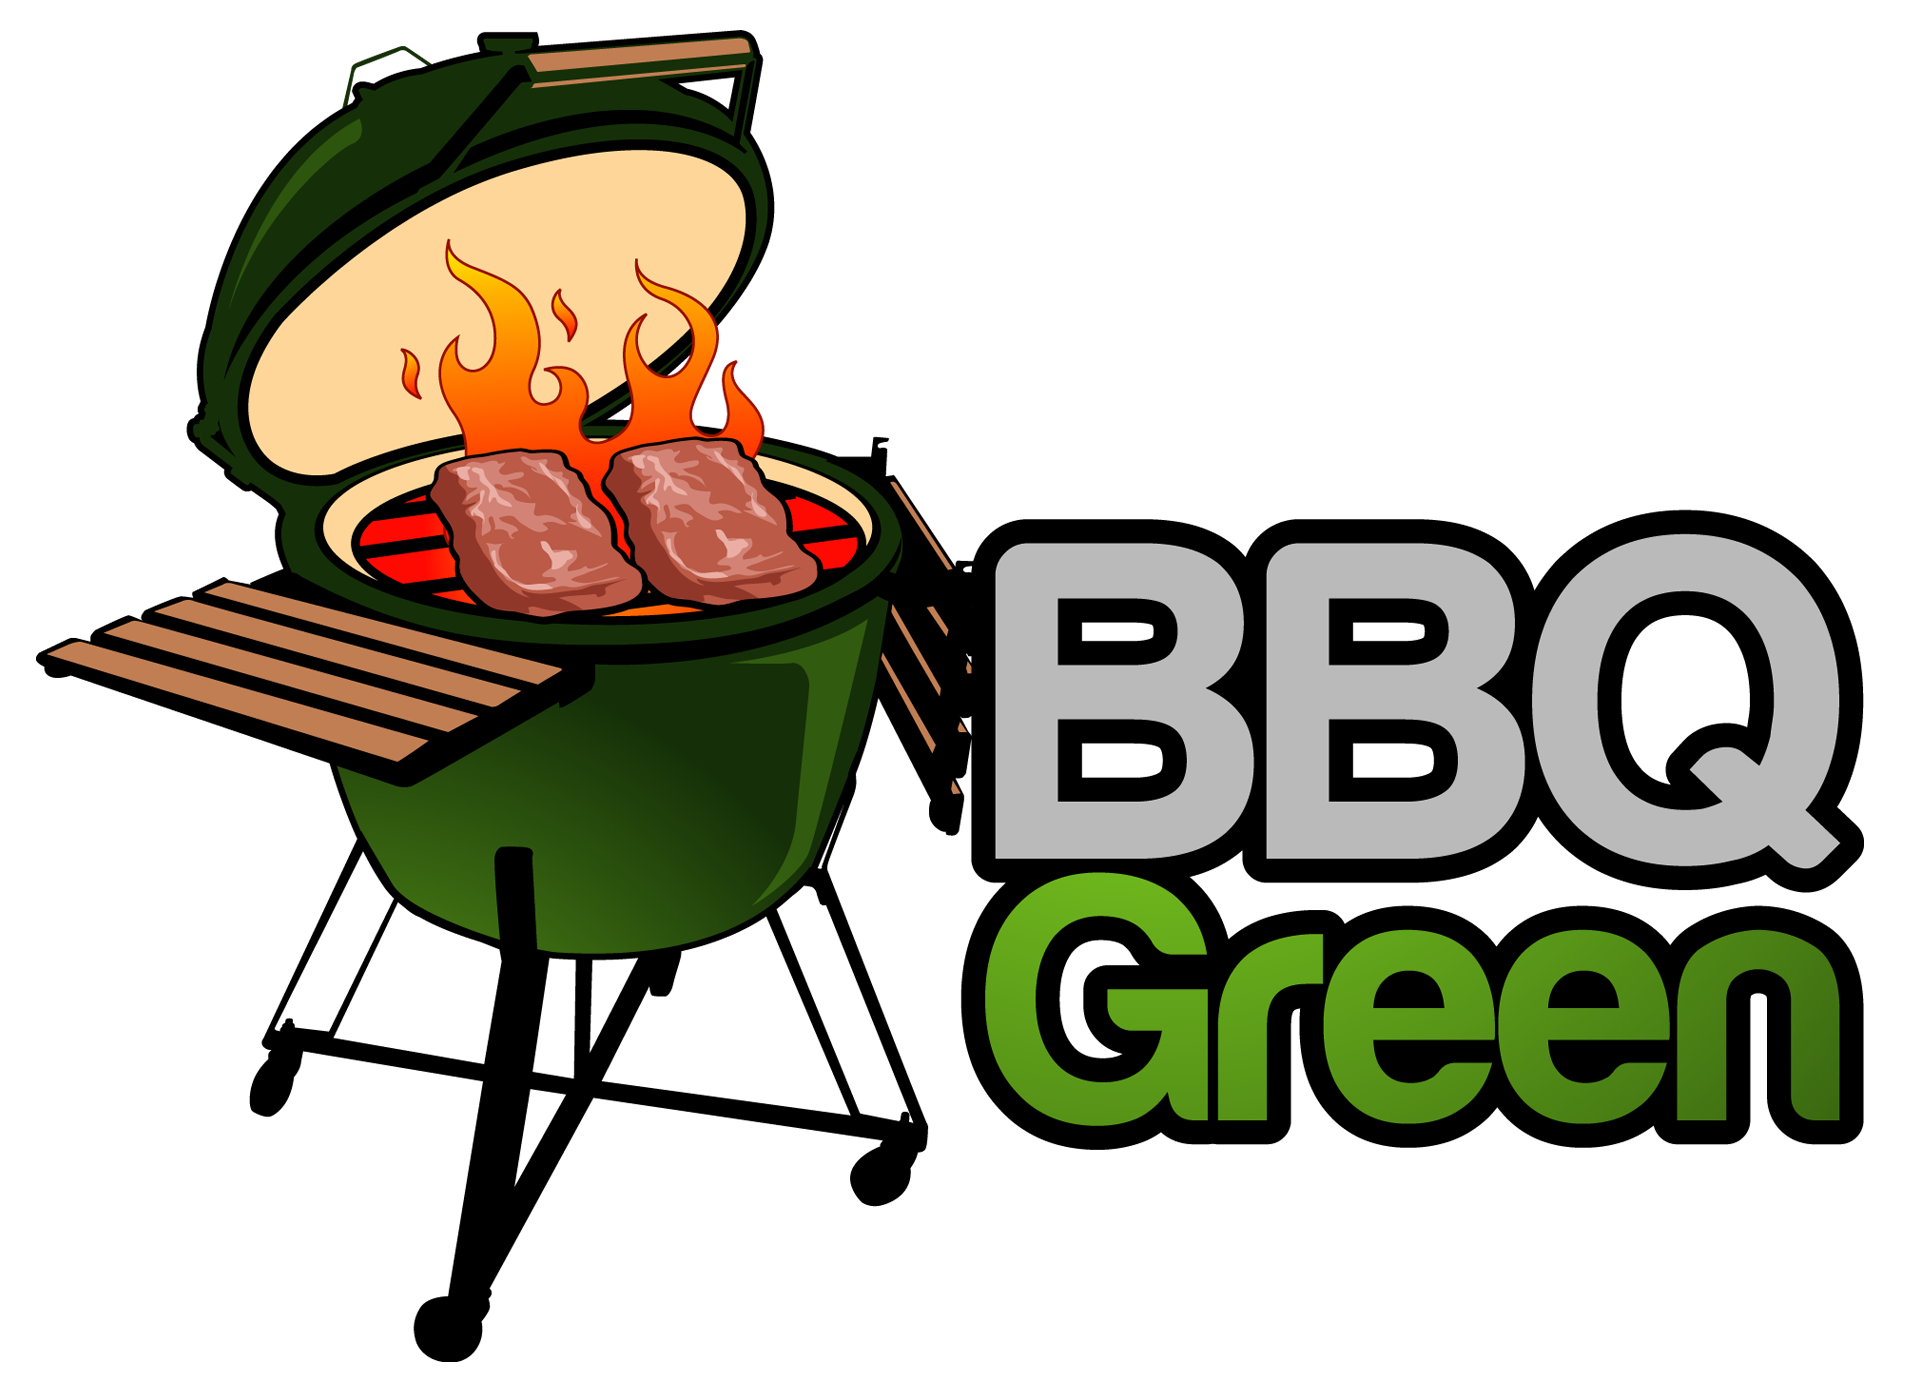 14 cliparts for free. Download Bbq clipart grill chef and use in.